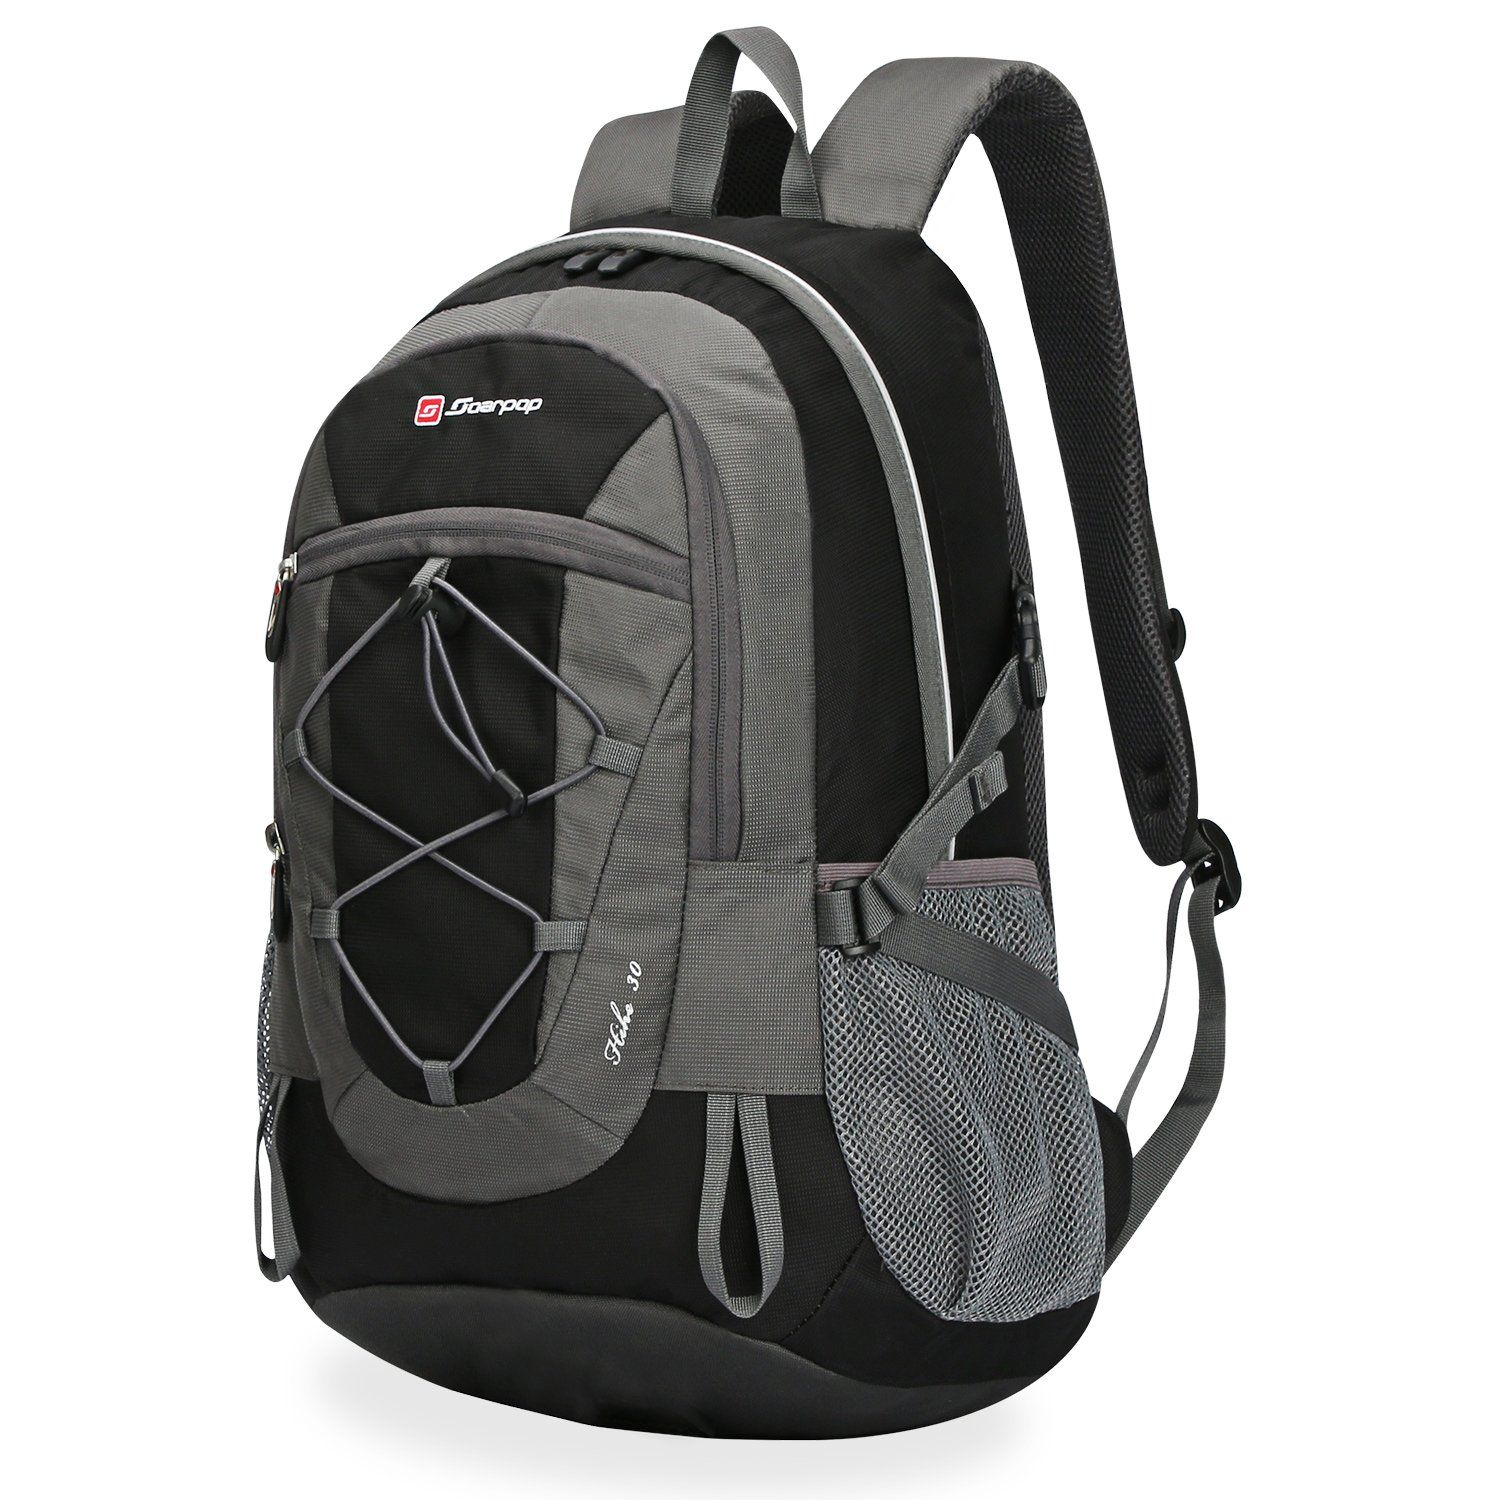 7267c04ef14c Soarpop Outdoor Sport School Lightweigh Backpack  Camping Travelling  Running Daypack. Terylene   water resistant nylon fabric.  Durable and high quality ...